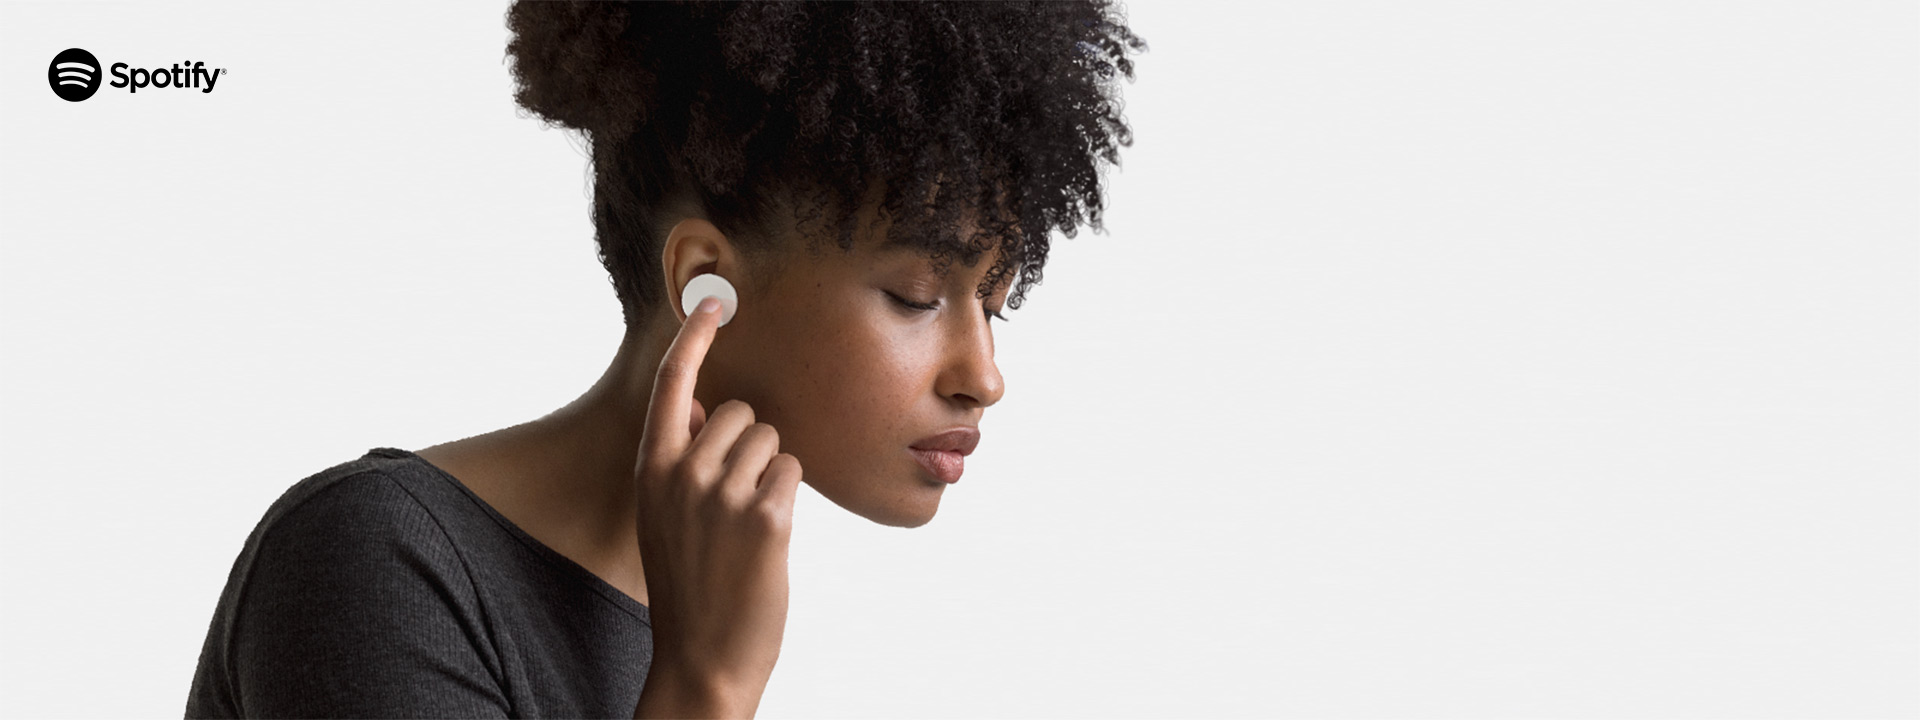 Person tapping to control Spotify with Surface Earbuds